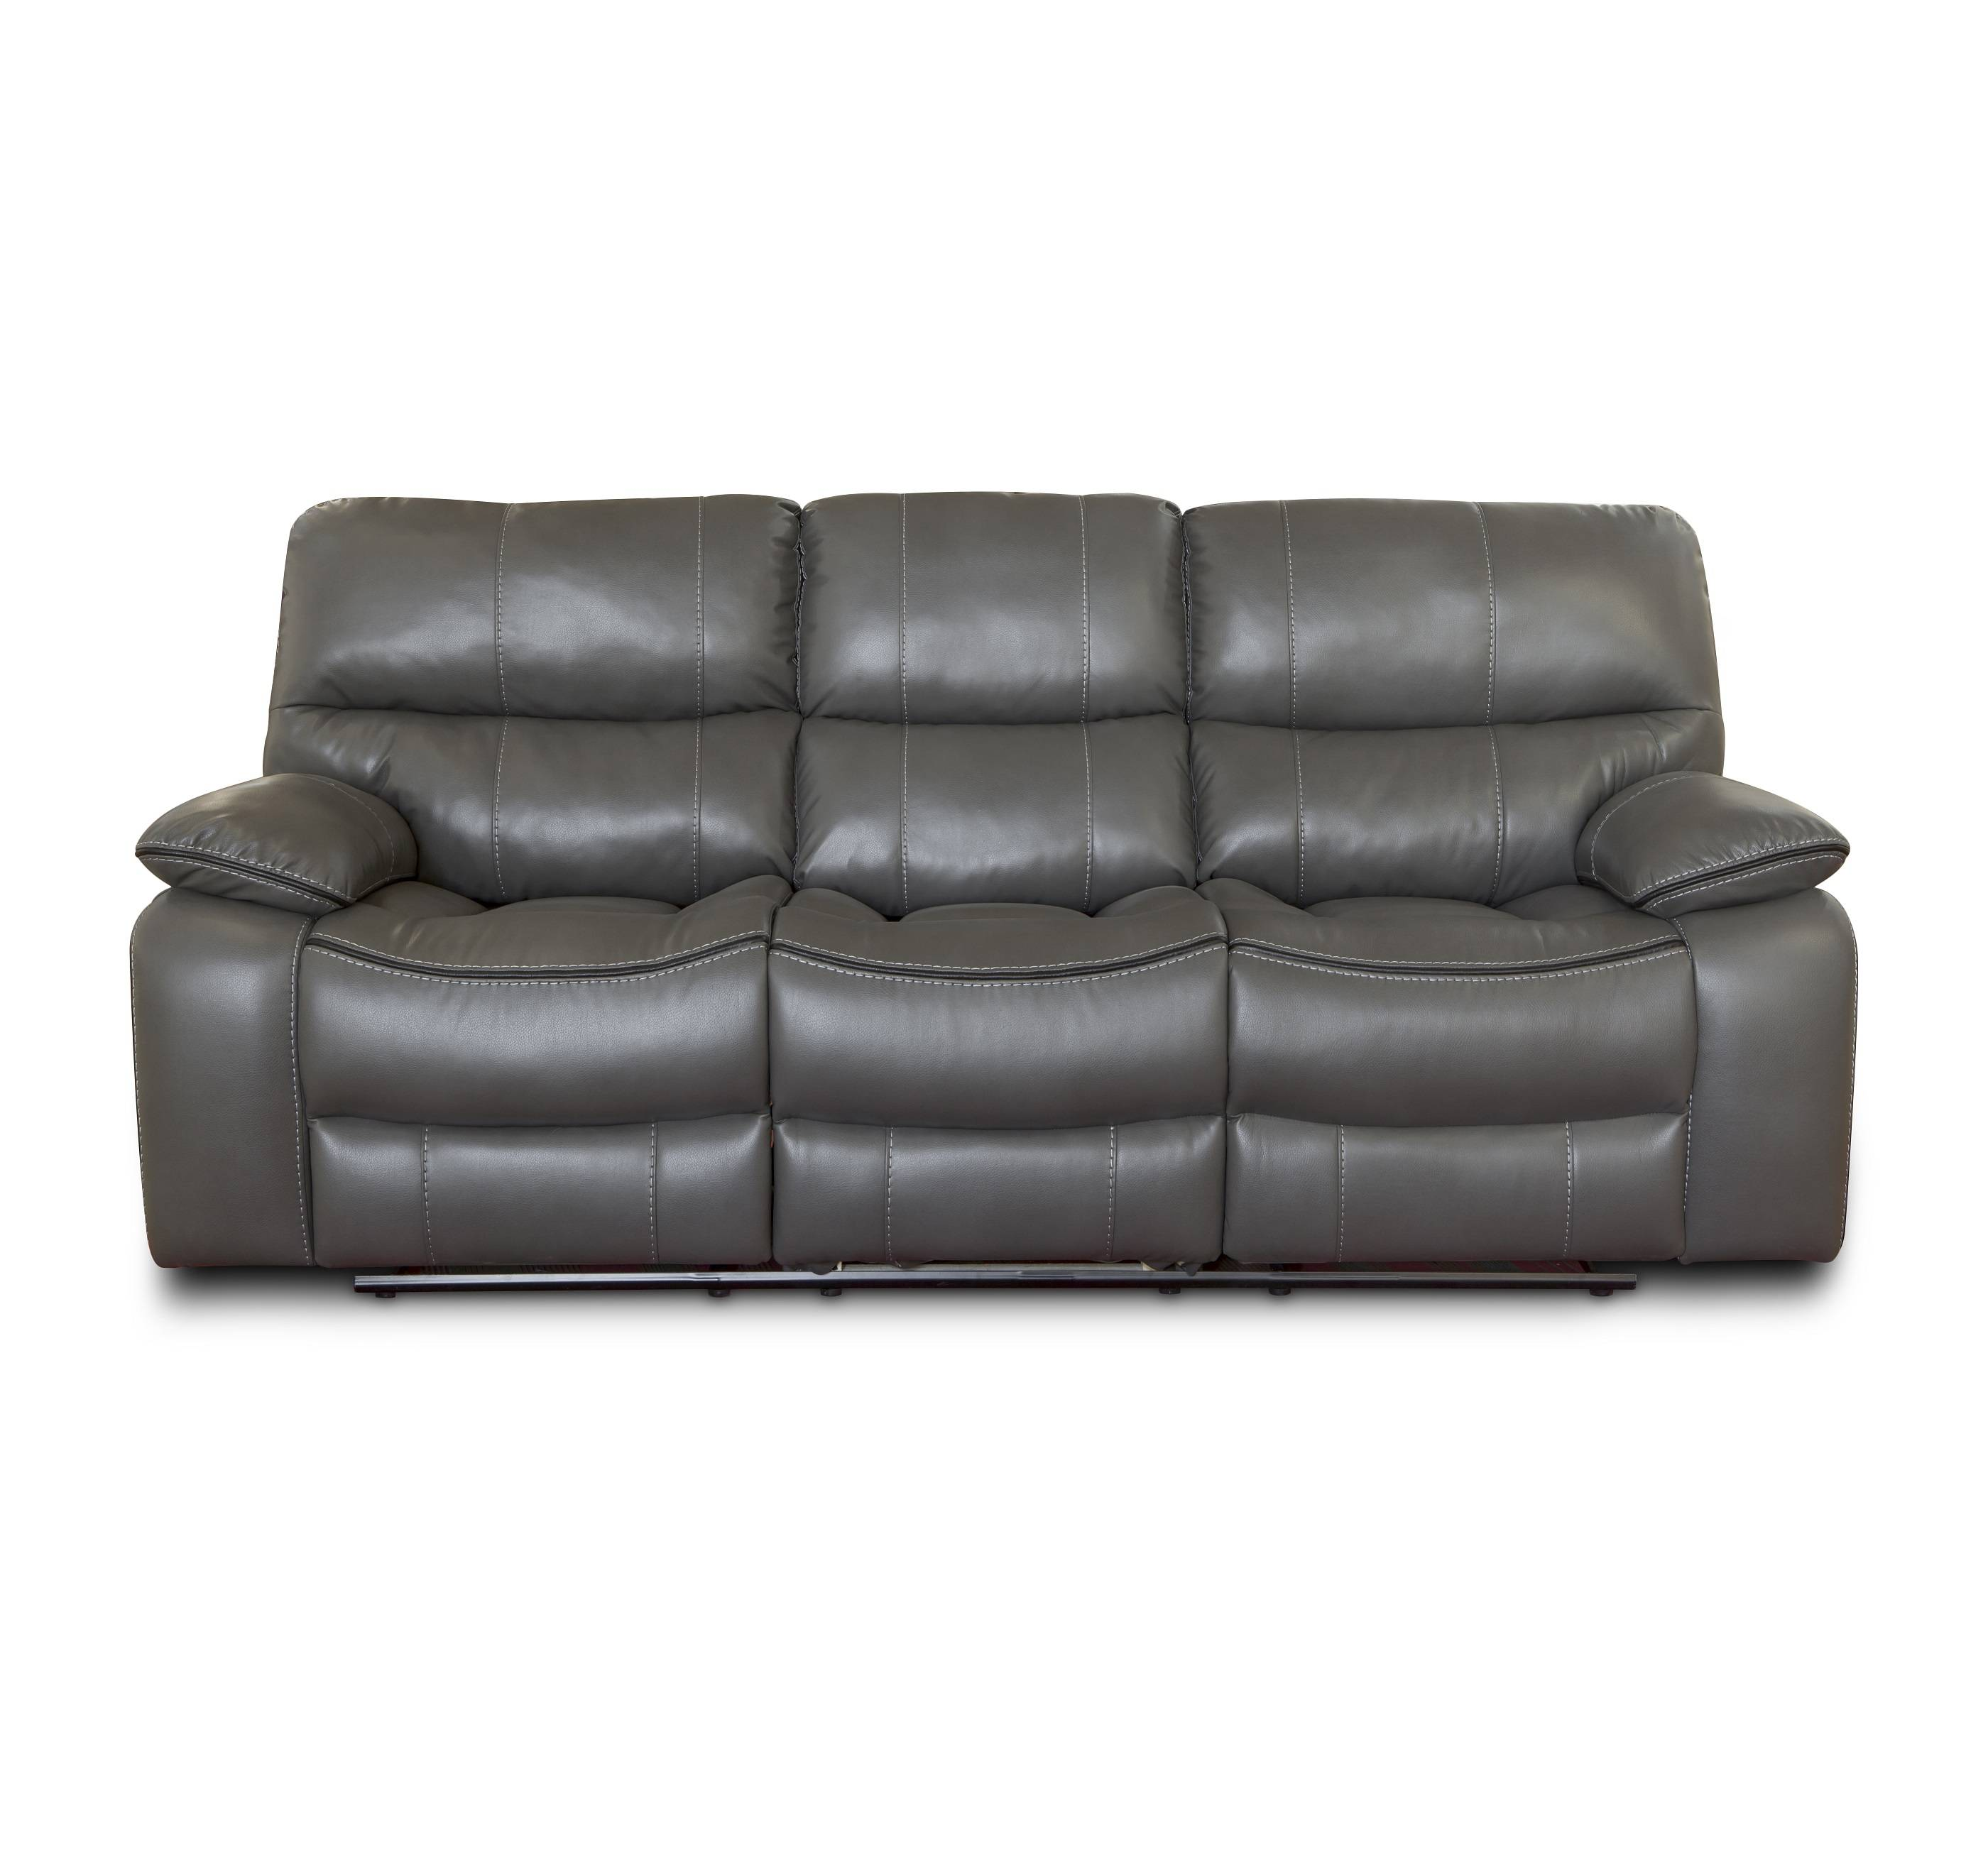 Functional high quality pu leather fancy 3 seat recliner sofa Featured Image